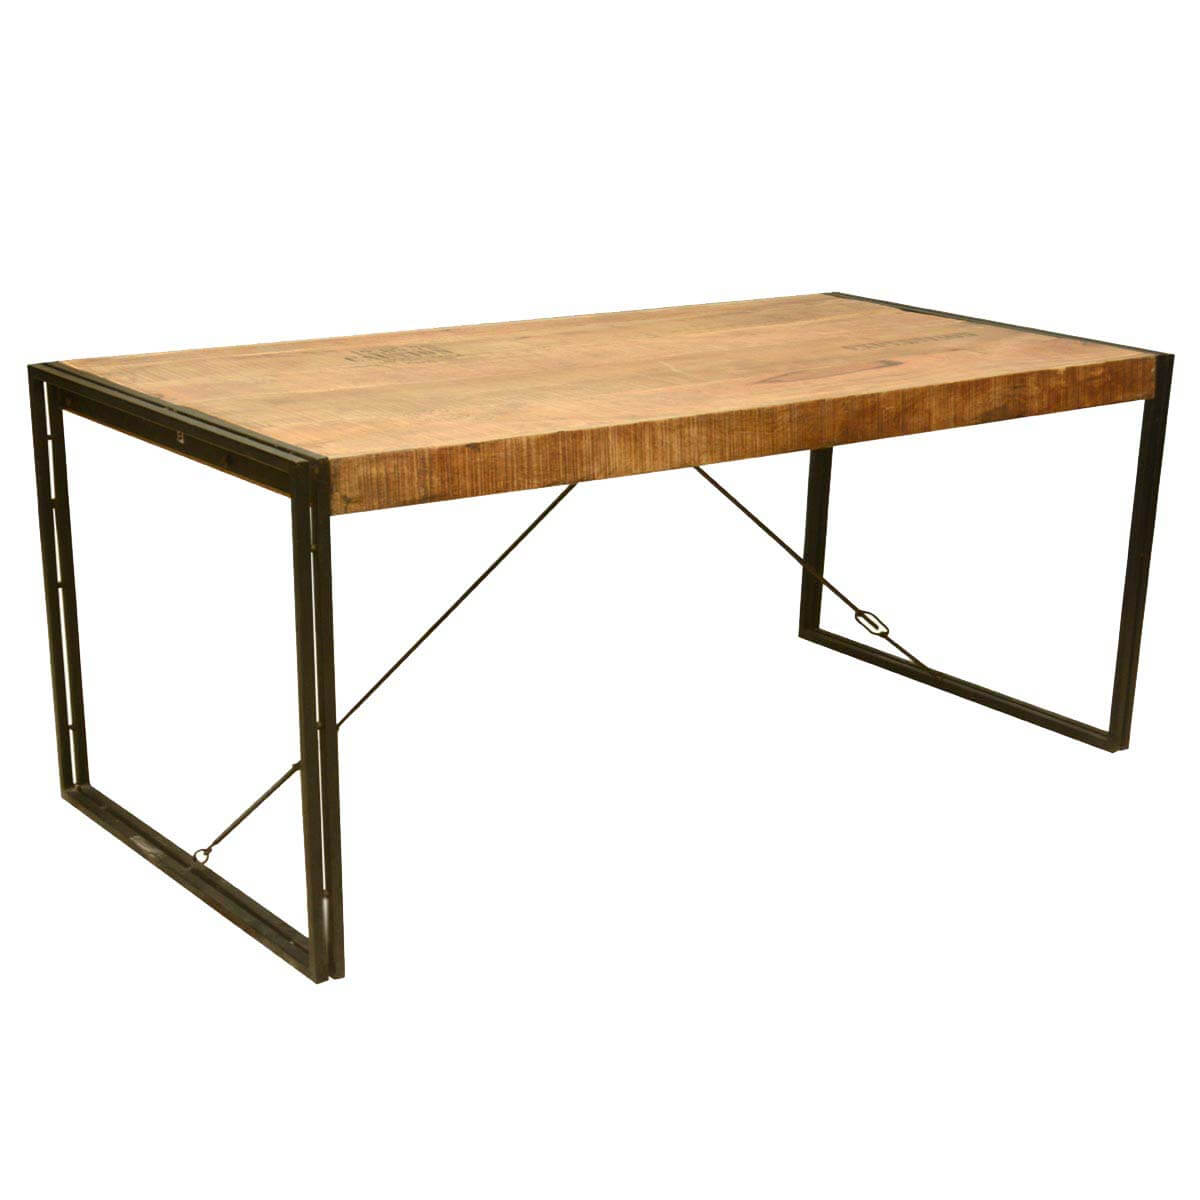 Large Rustic Industrial Style Mango Wood and Iron Dining Table : 5803 from www.sierralivingconcepts.com size 1200 x 1200 jpeg 77kB